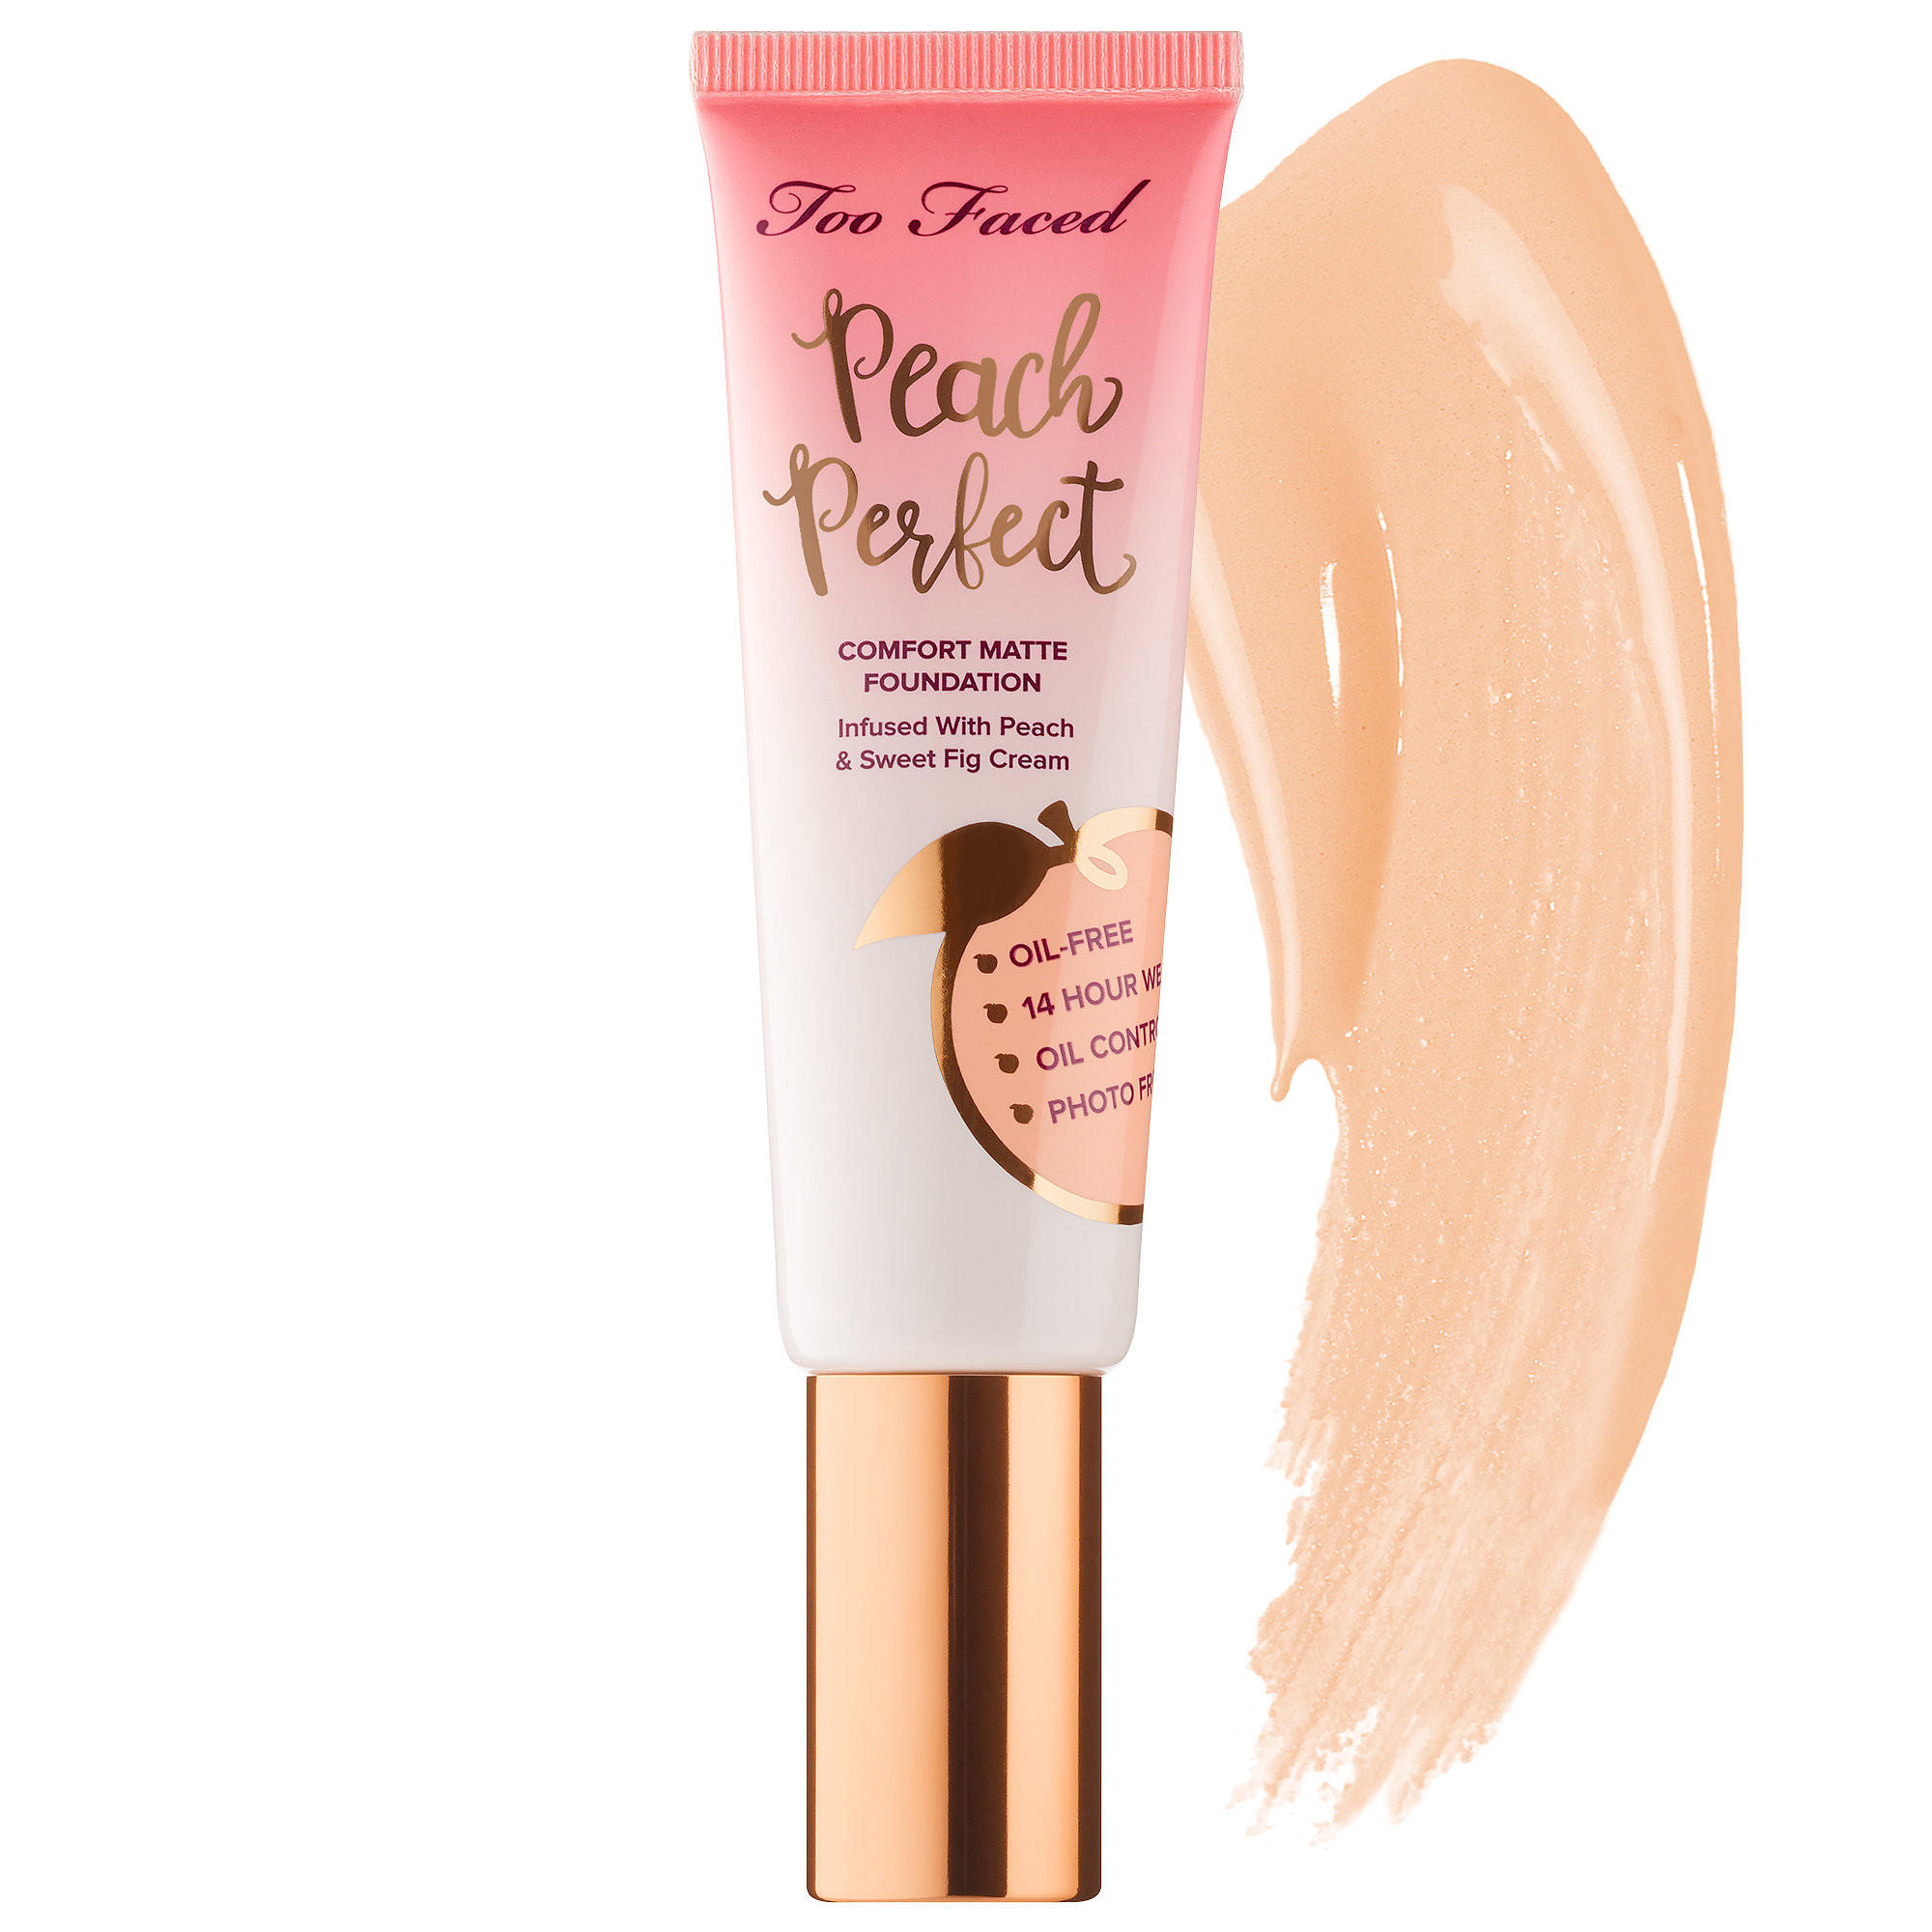 Too Faced Peach Perfect Comfort Matte Foundation Snow